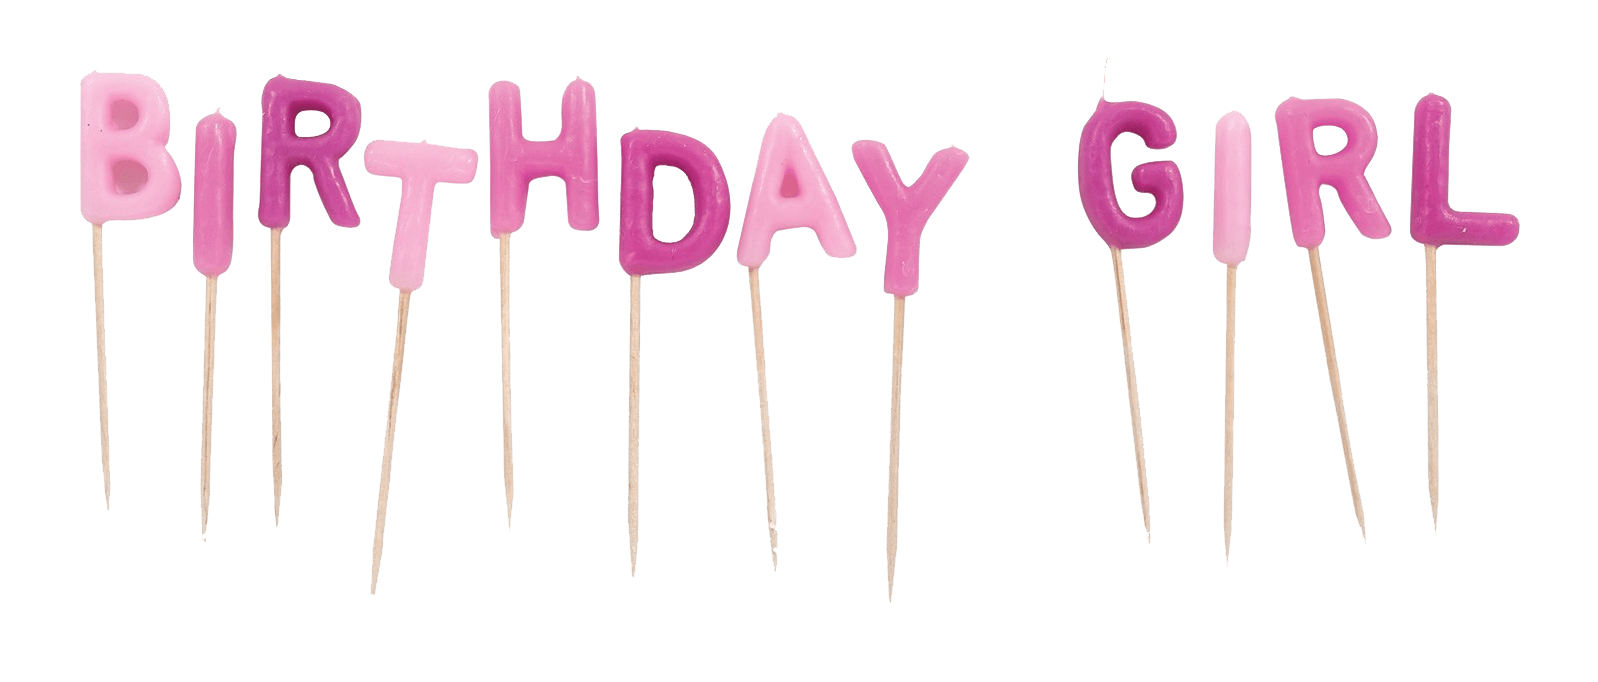 It's a girl banner png. Birthday candles transparent stickpng